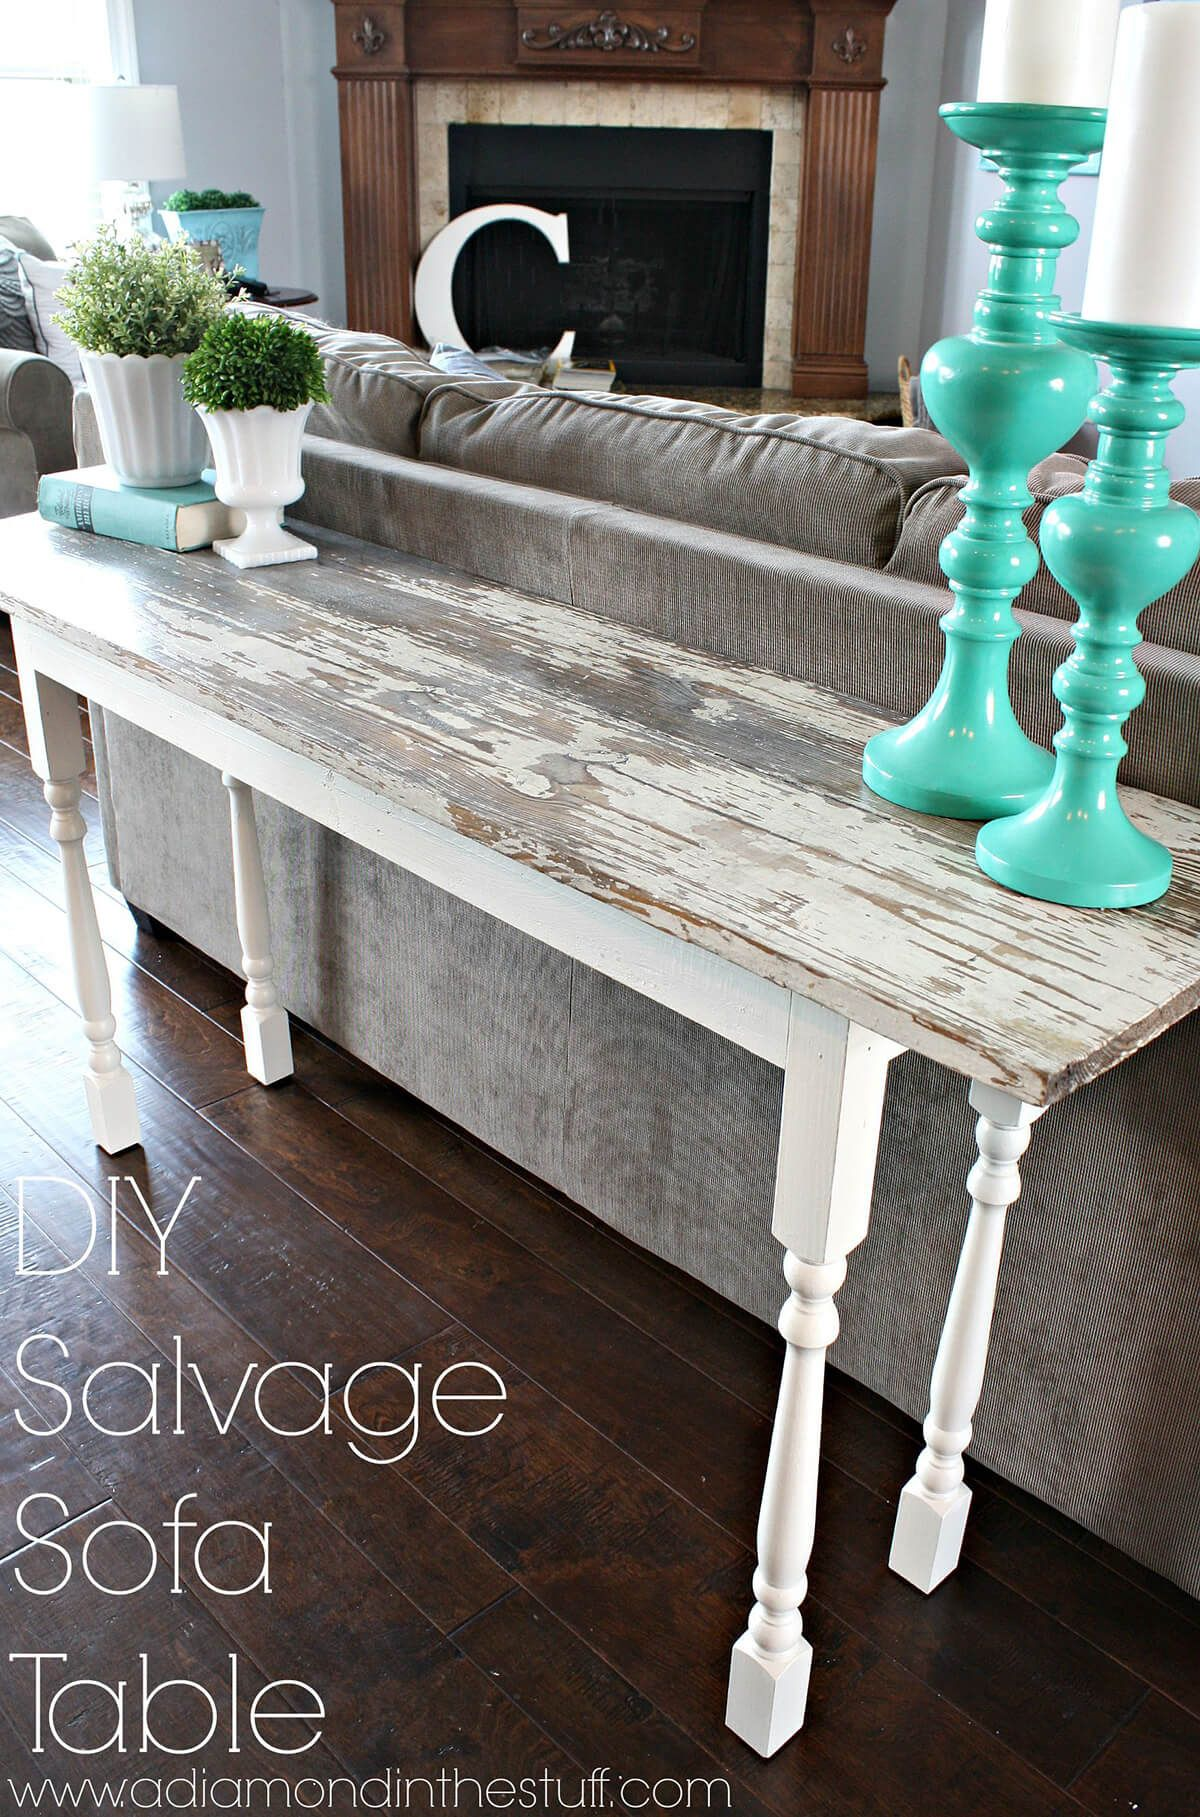 salvage plank sofa table with spindle legs diy furniture wood accent nate berkus lamp beach cottage lighting battery powered lamps pottery barn kitchen tables and chairs small